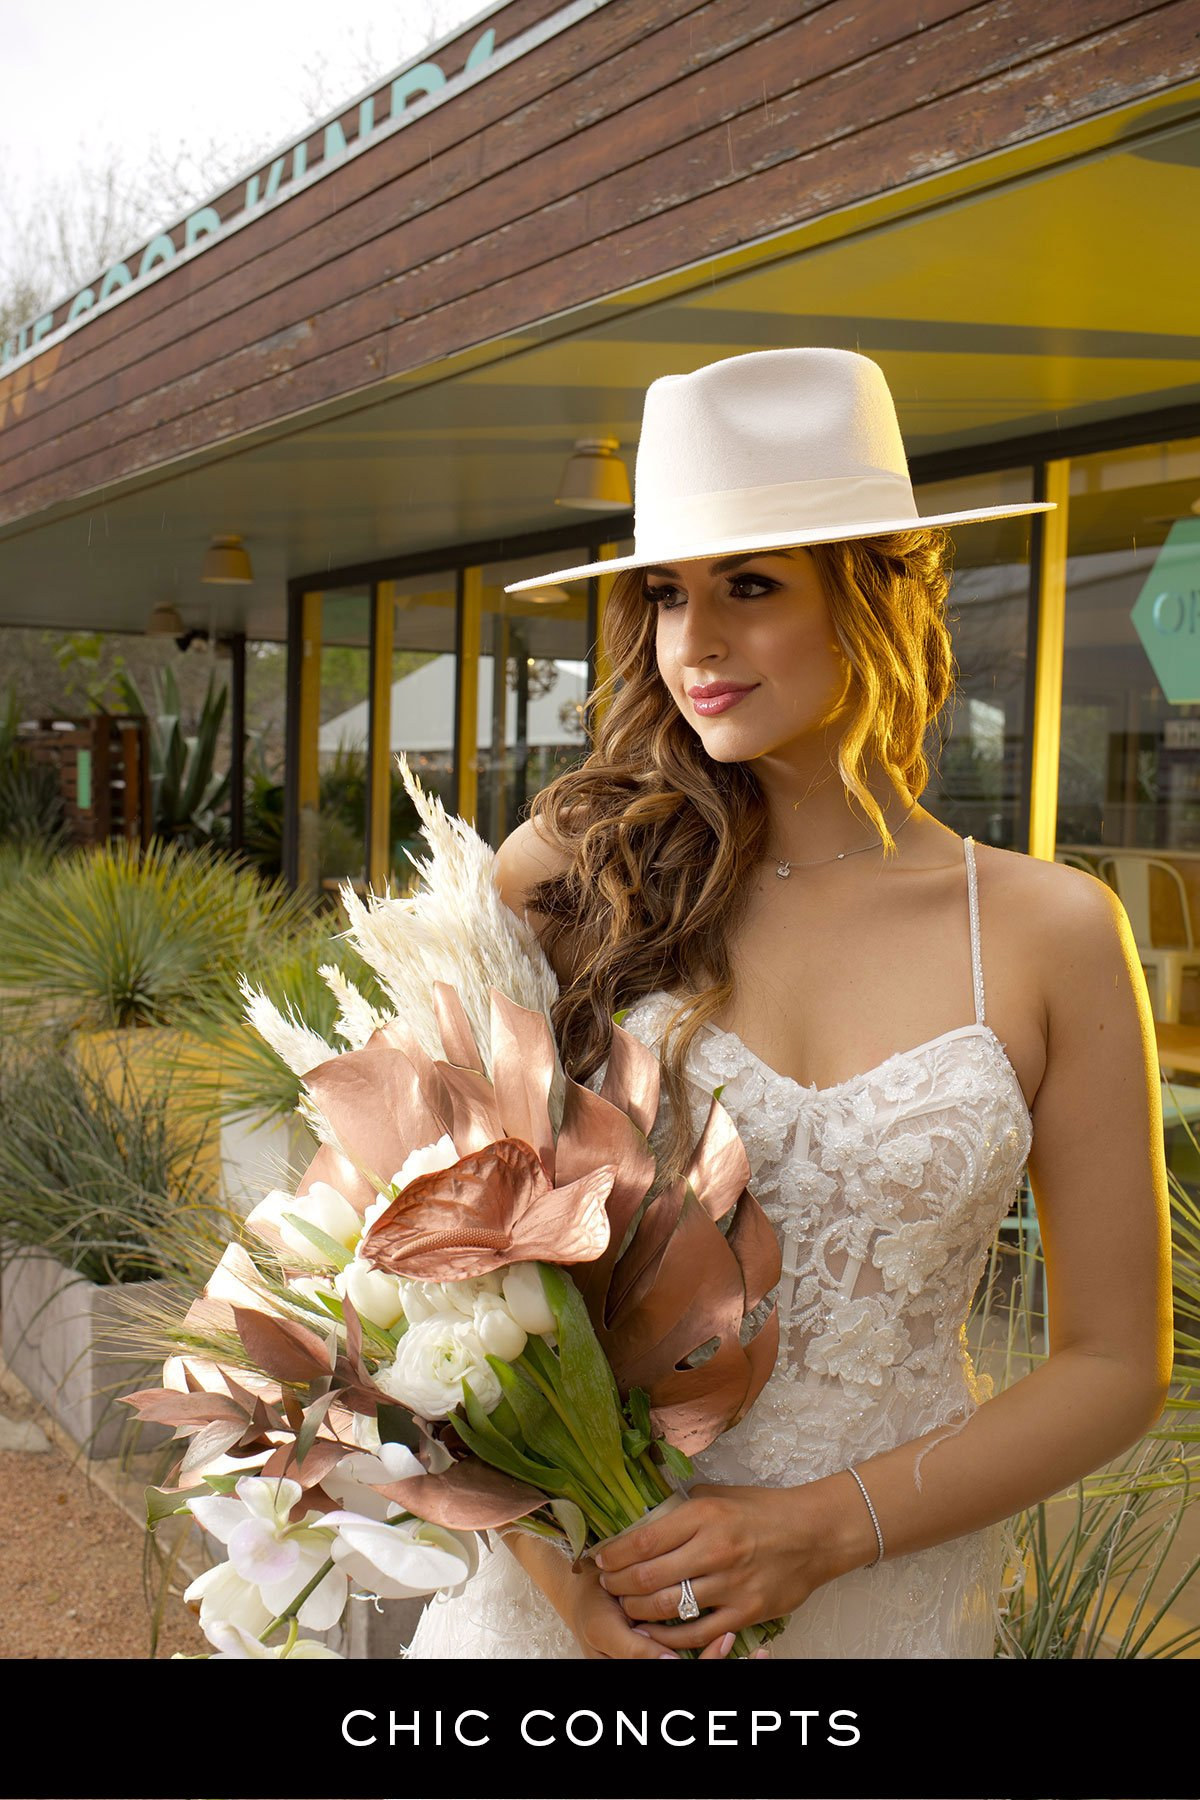 Chic-Concepts-Boquet-Shoot-San-Antonio-Weddings-2020-Mainc